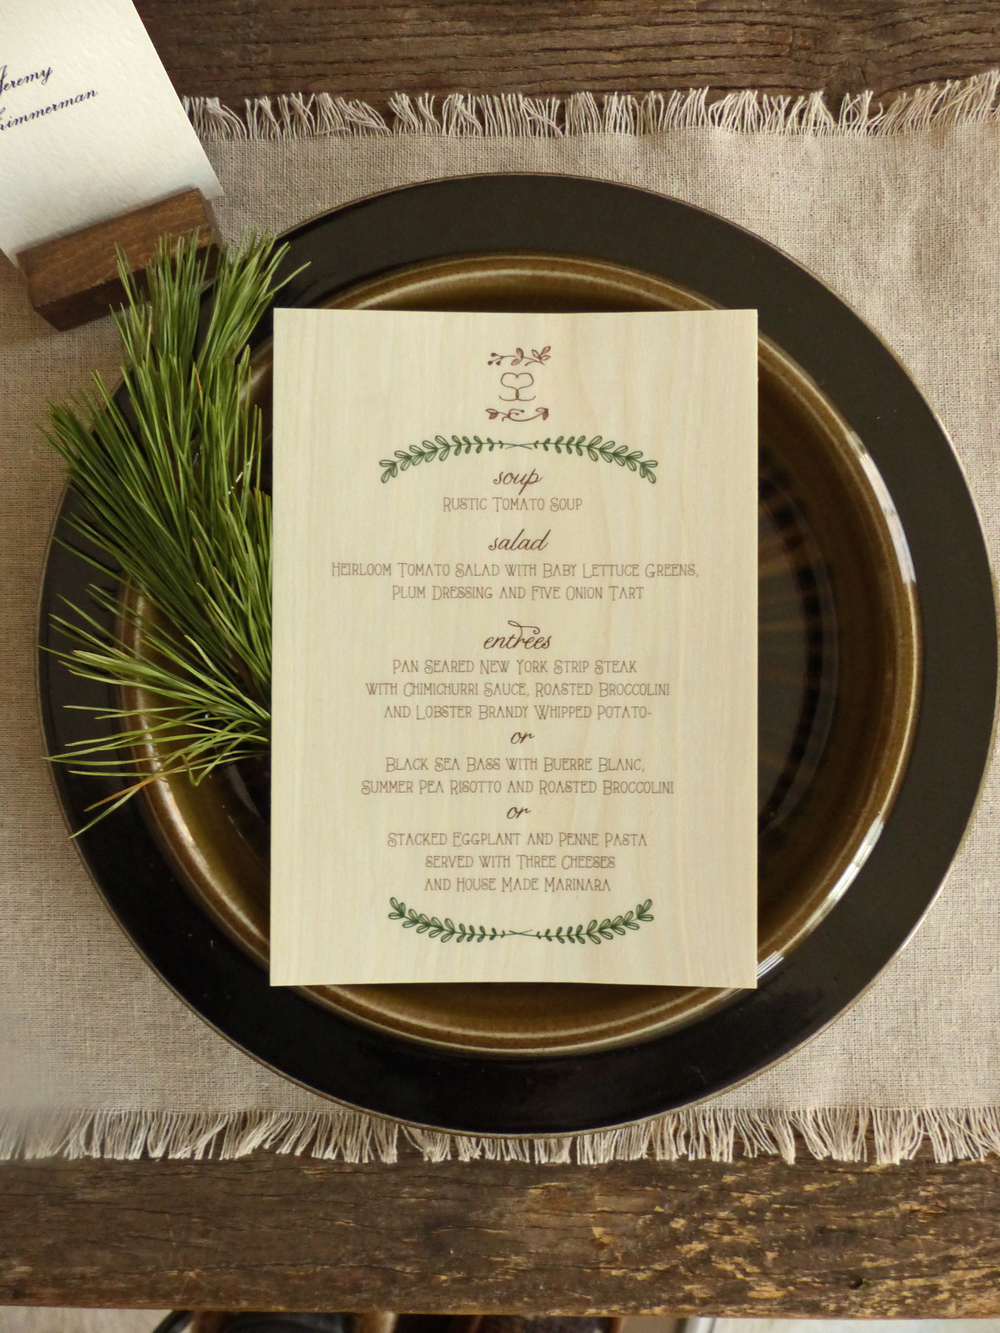 The dinner menu, like the invitation, was printed on aspen wood veneer.